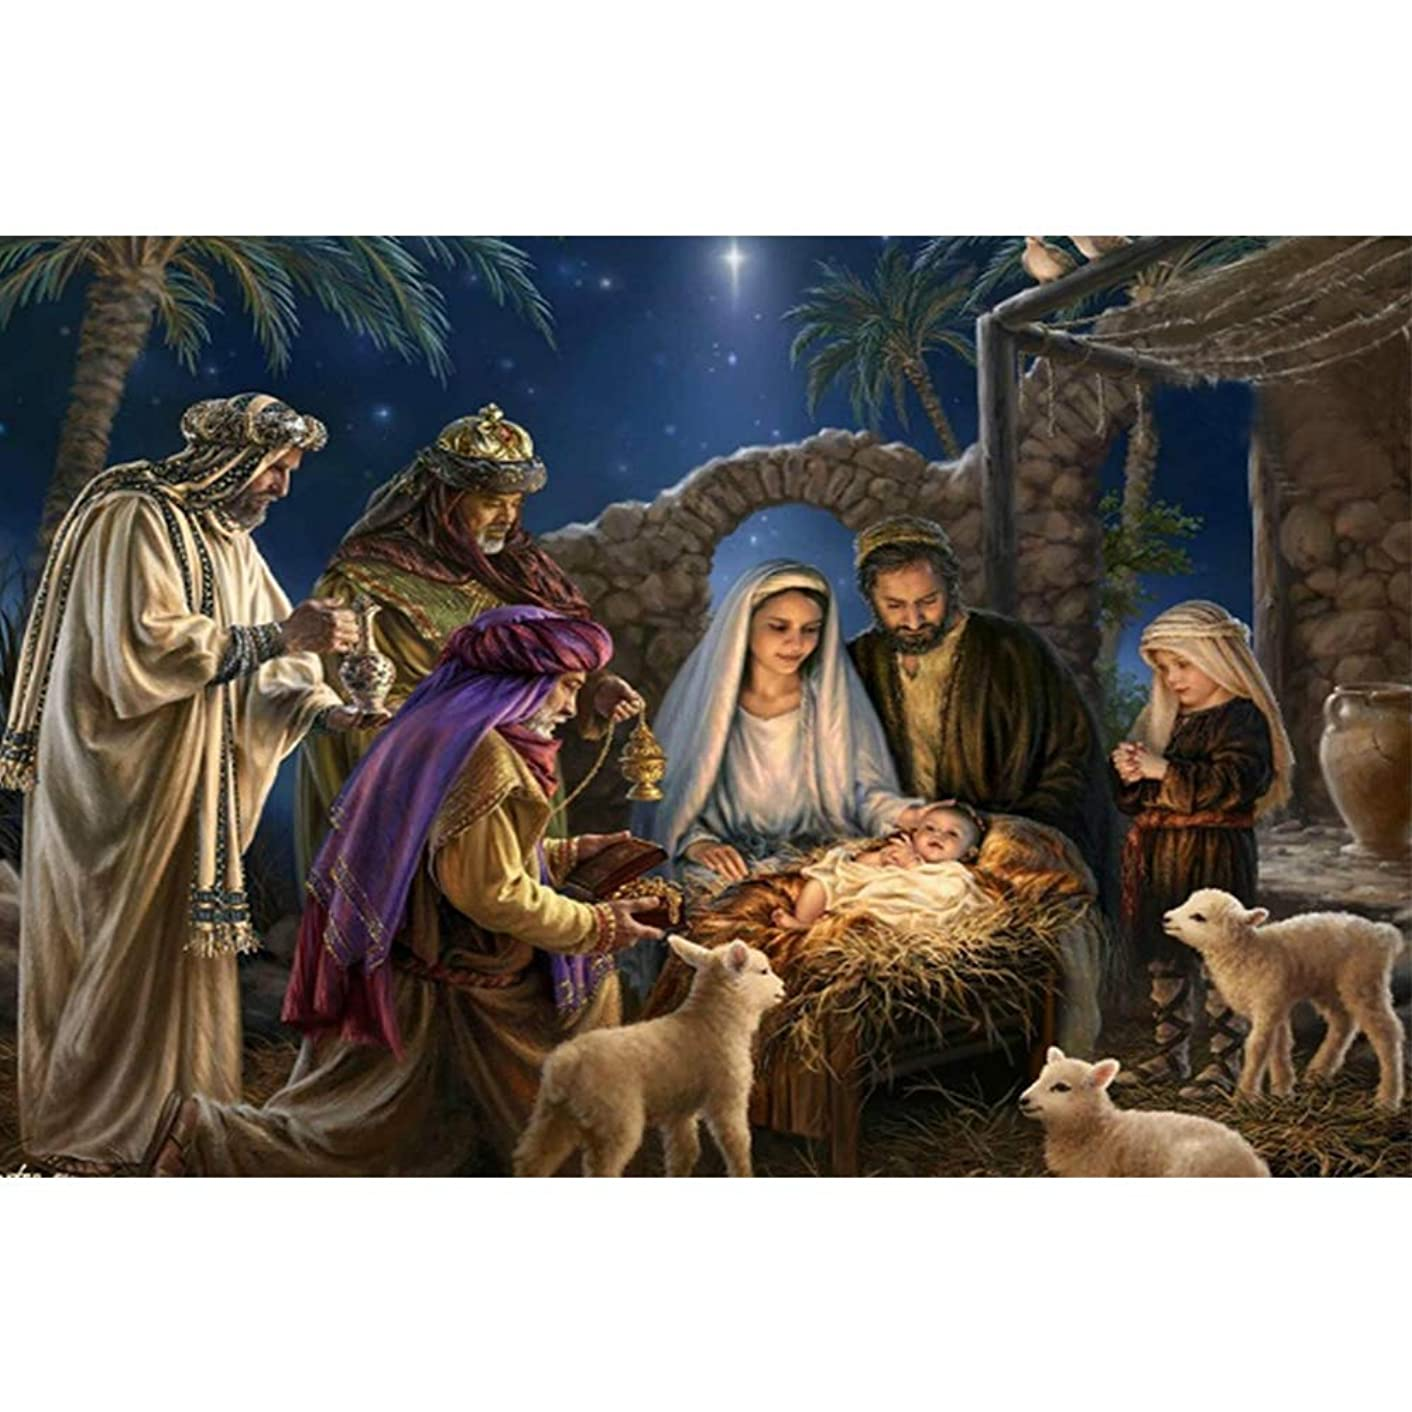 DIY 5D Diamond Painting Kit, Crystal Drill Religious Jesus Rhinestone Embroidery Cross Stitch Supply Arts Craft Canvas Wall Decor (39X29CM/15.4X11.4inch)